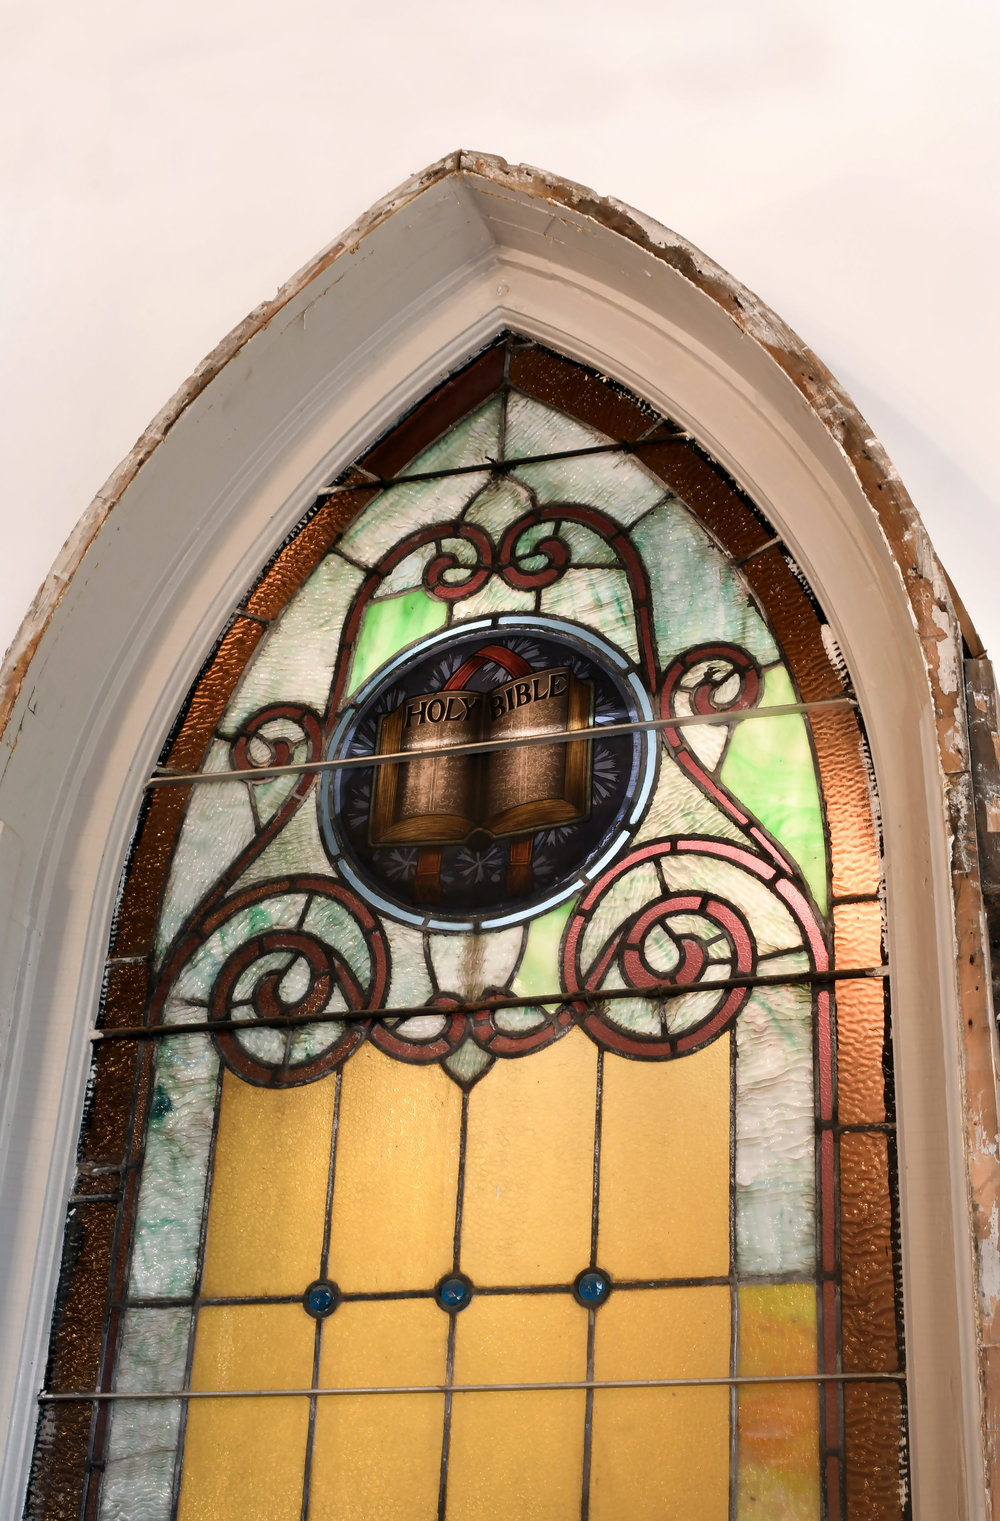 45475-small-arched-church-window-bible-detail.jpg